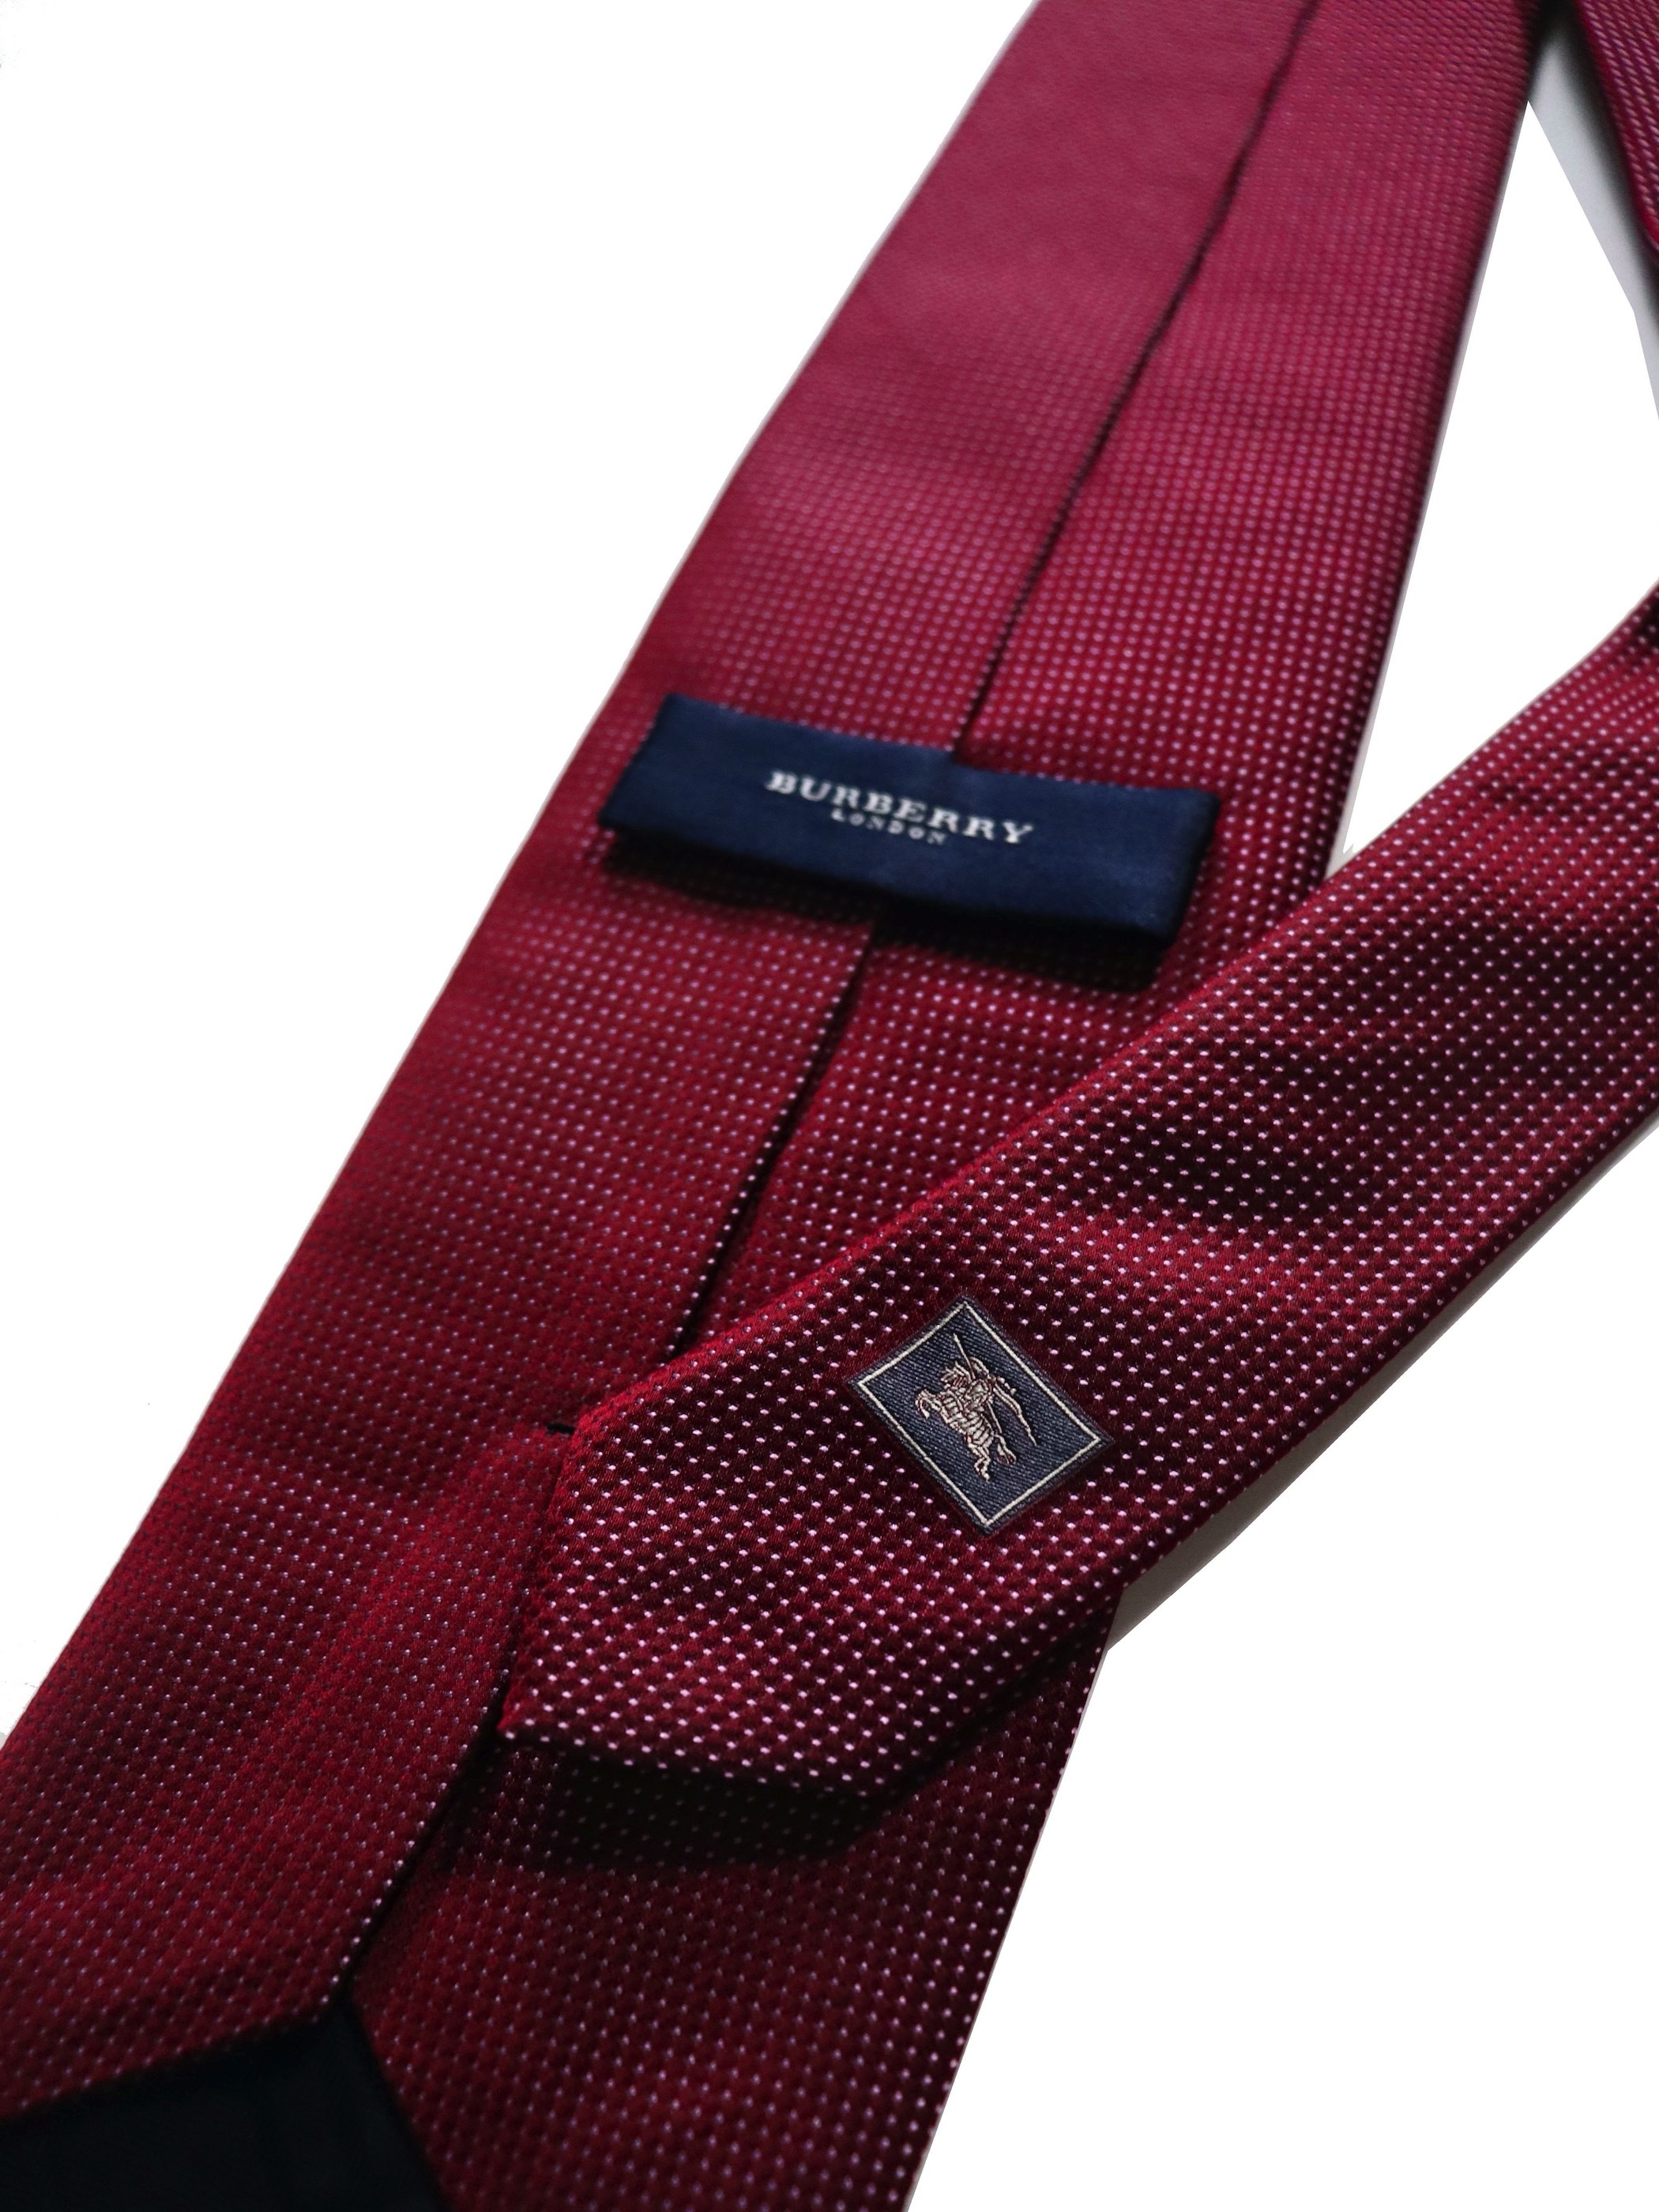 BURBERRY LONDON Silk Dot Tie / Made in Italy